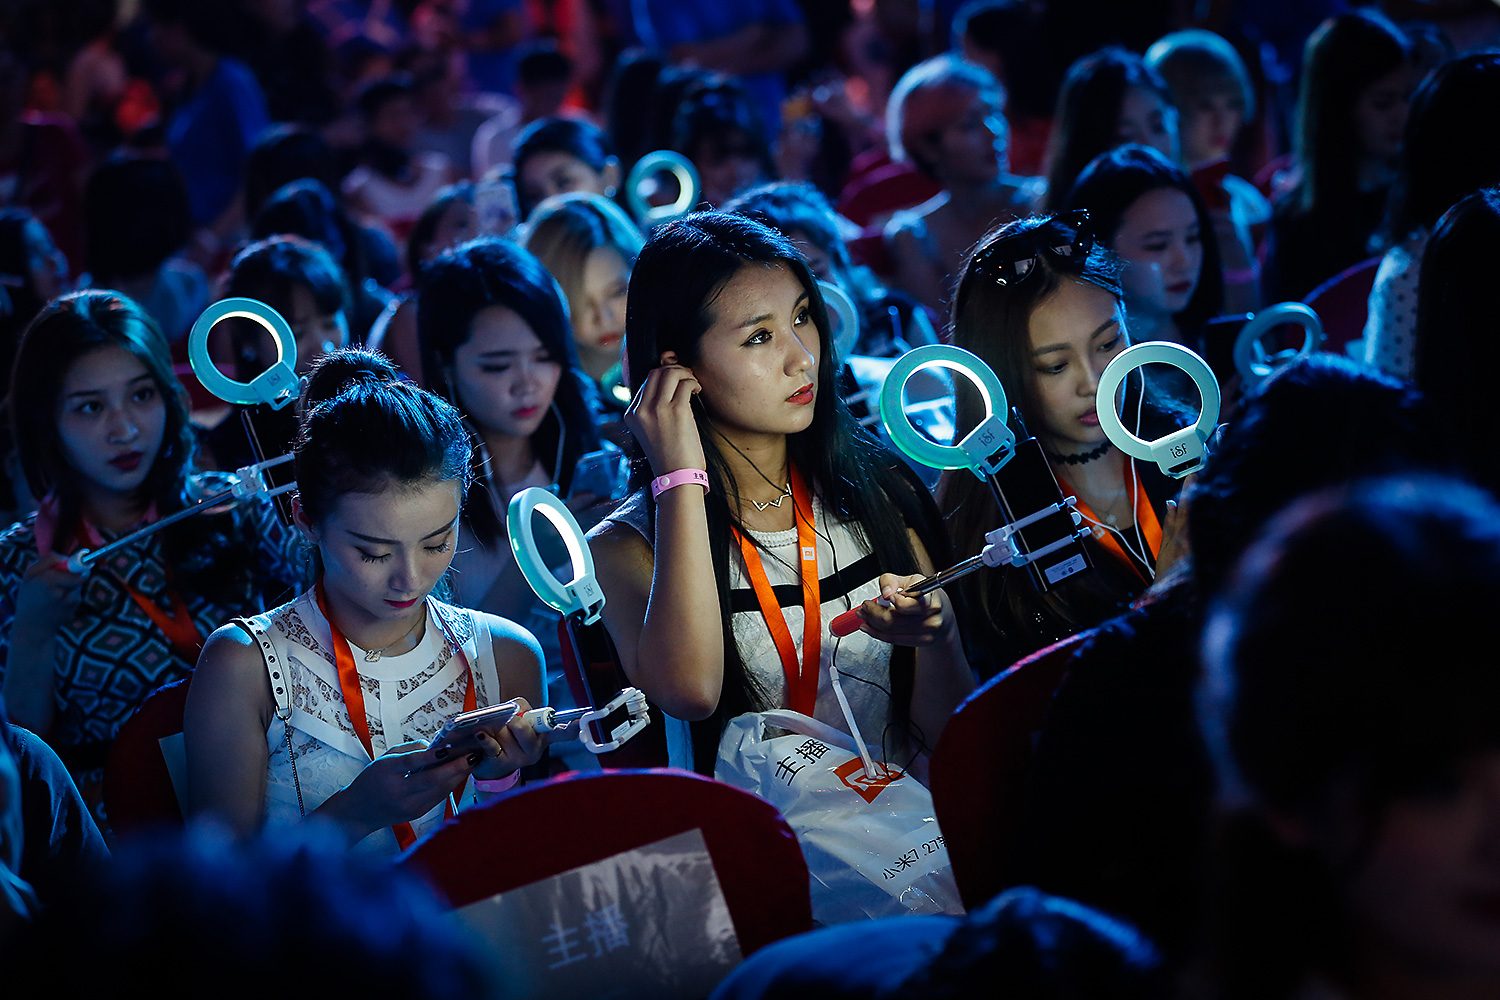 Aspiring Internet celebrities (a.k.a. hostesses) attend a product release presentation at a conference in Beijing. Every month, more than 85 million people watch live broadcasts on cellphone apps, according to QuestMobile. Photo by Liu Xingzhe @liuxingzhe